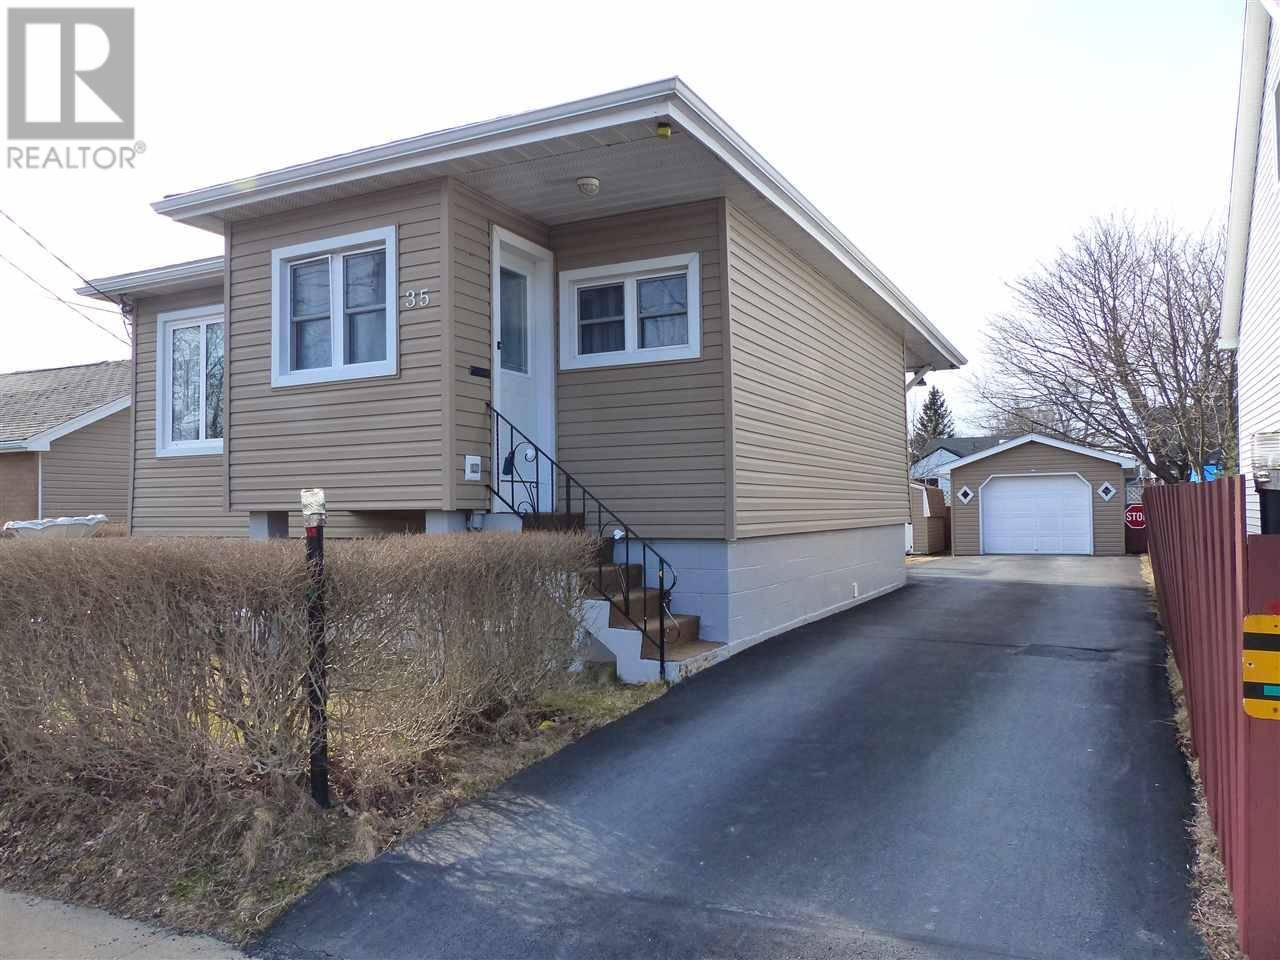 House for sale at 35 Chappell St Dartmouth Nova Scotia - MLS: 202005526